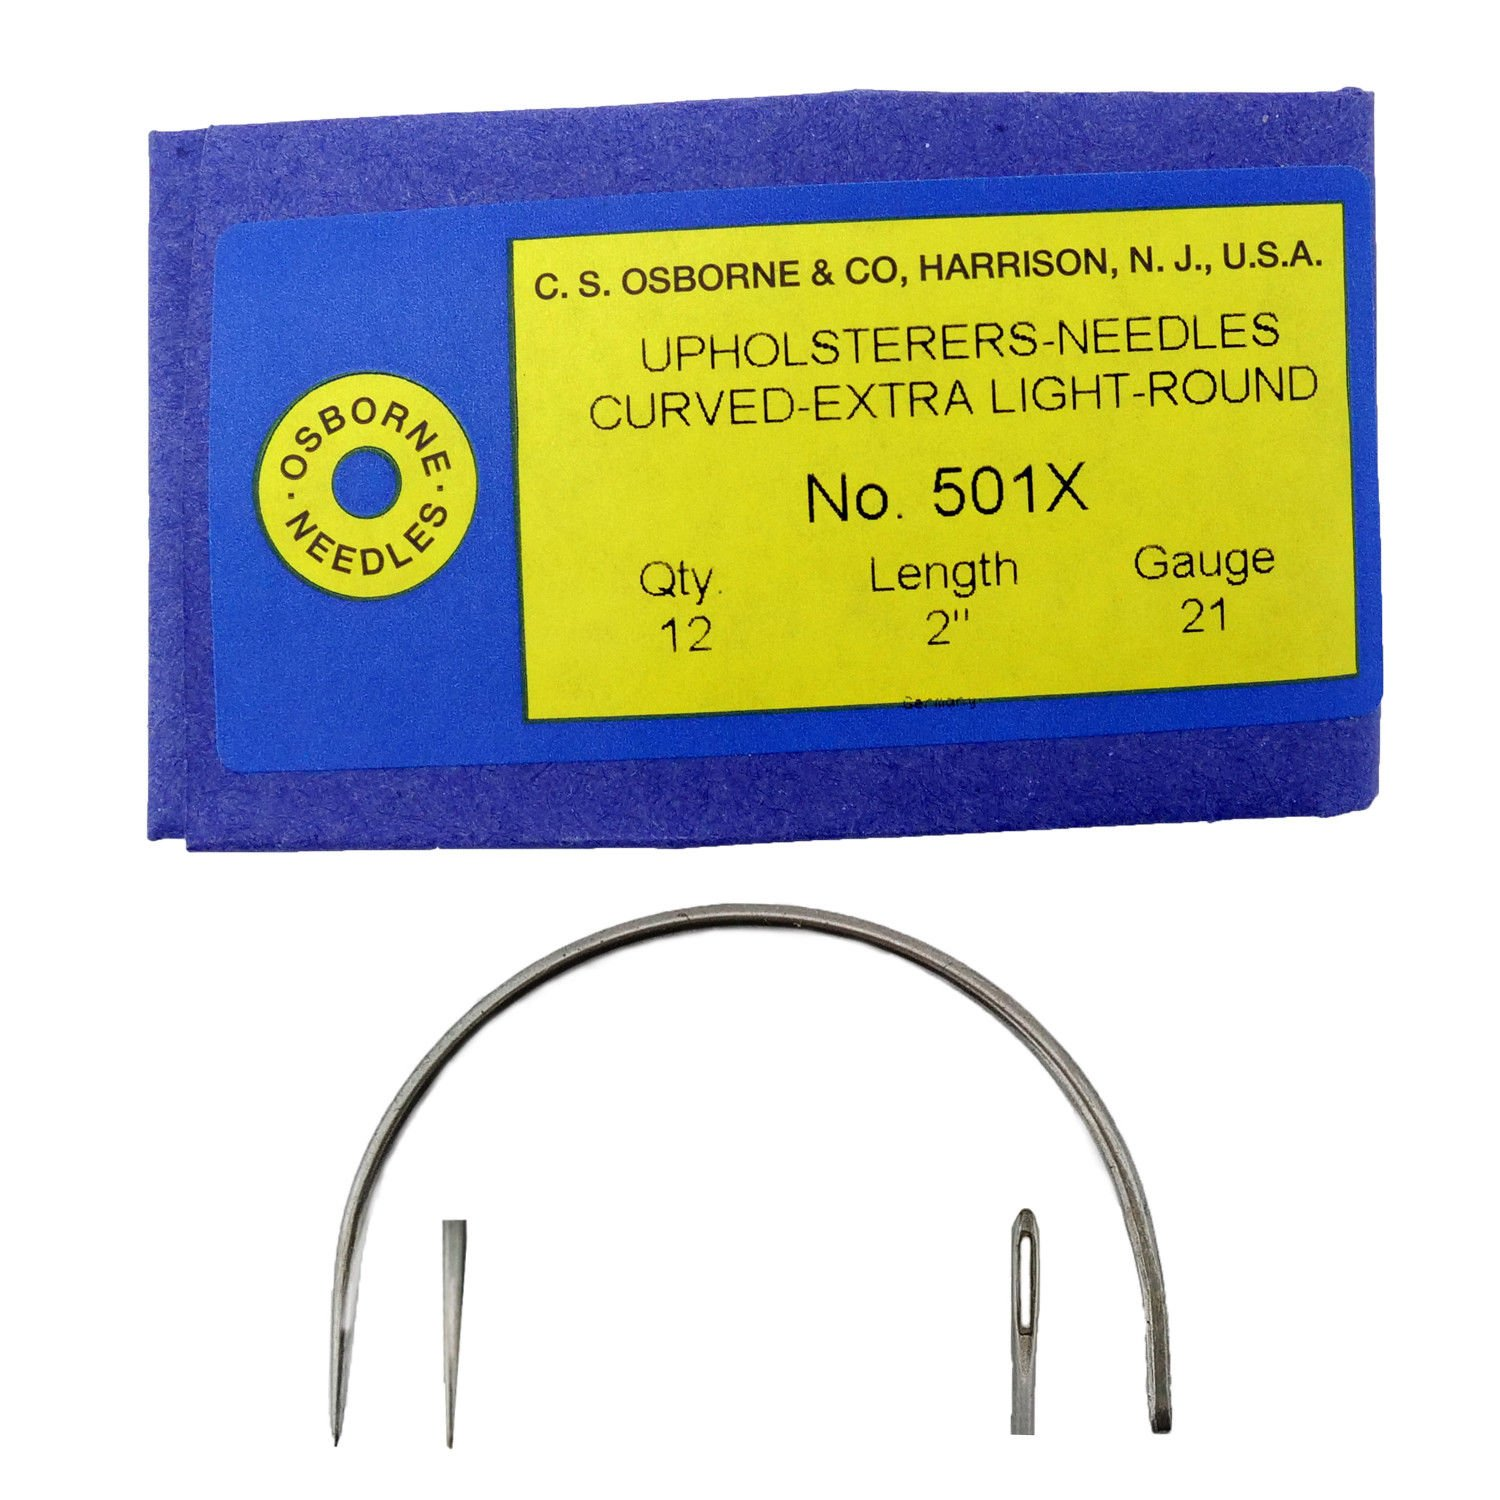 C.S. Osborne Pack Of 12 Curved Needles Extra Light #501X Size 2'' Made In USA by C.S. Osborne